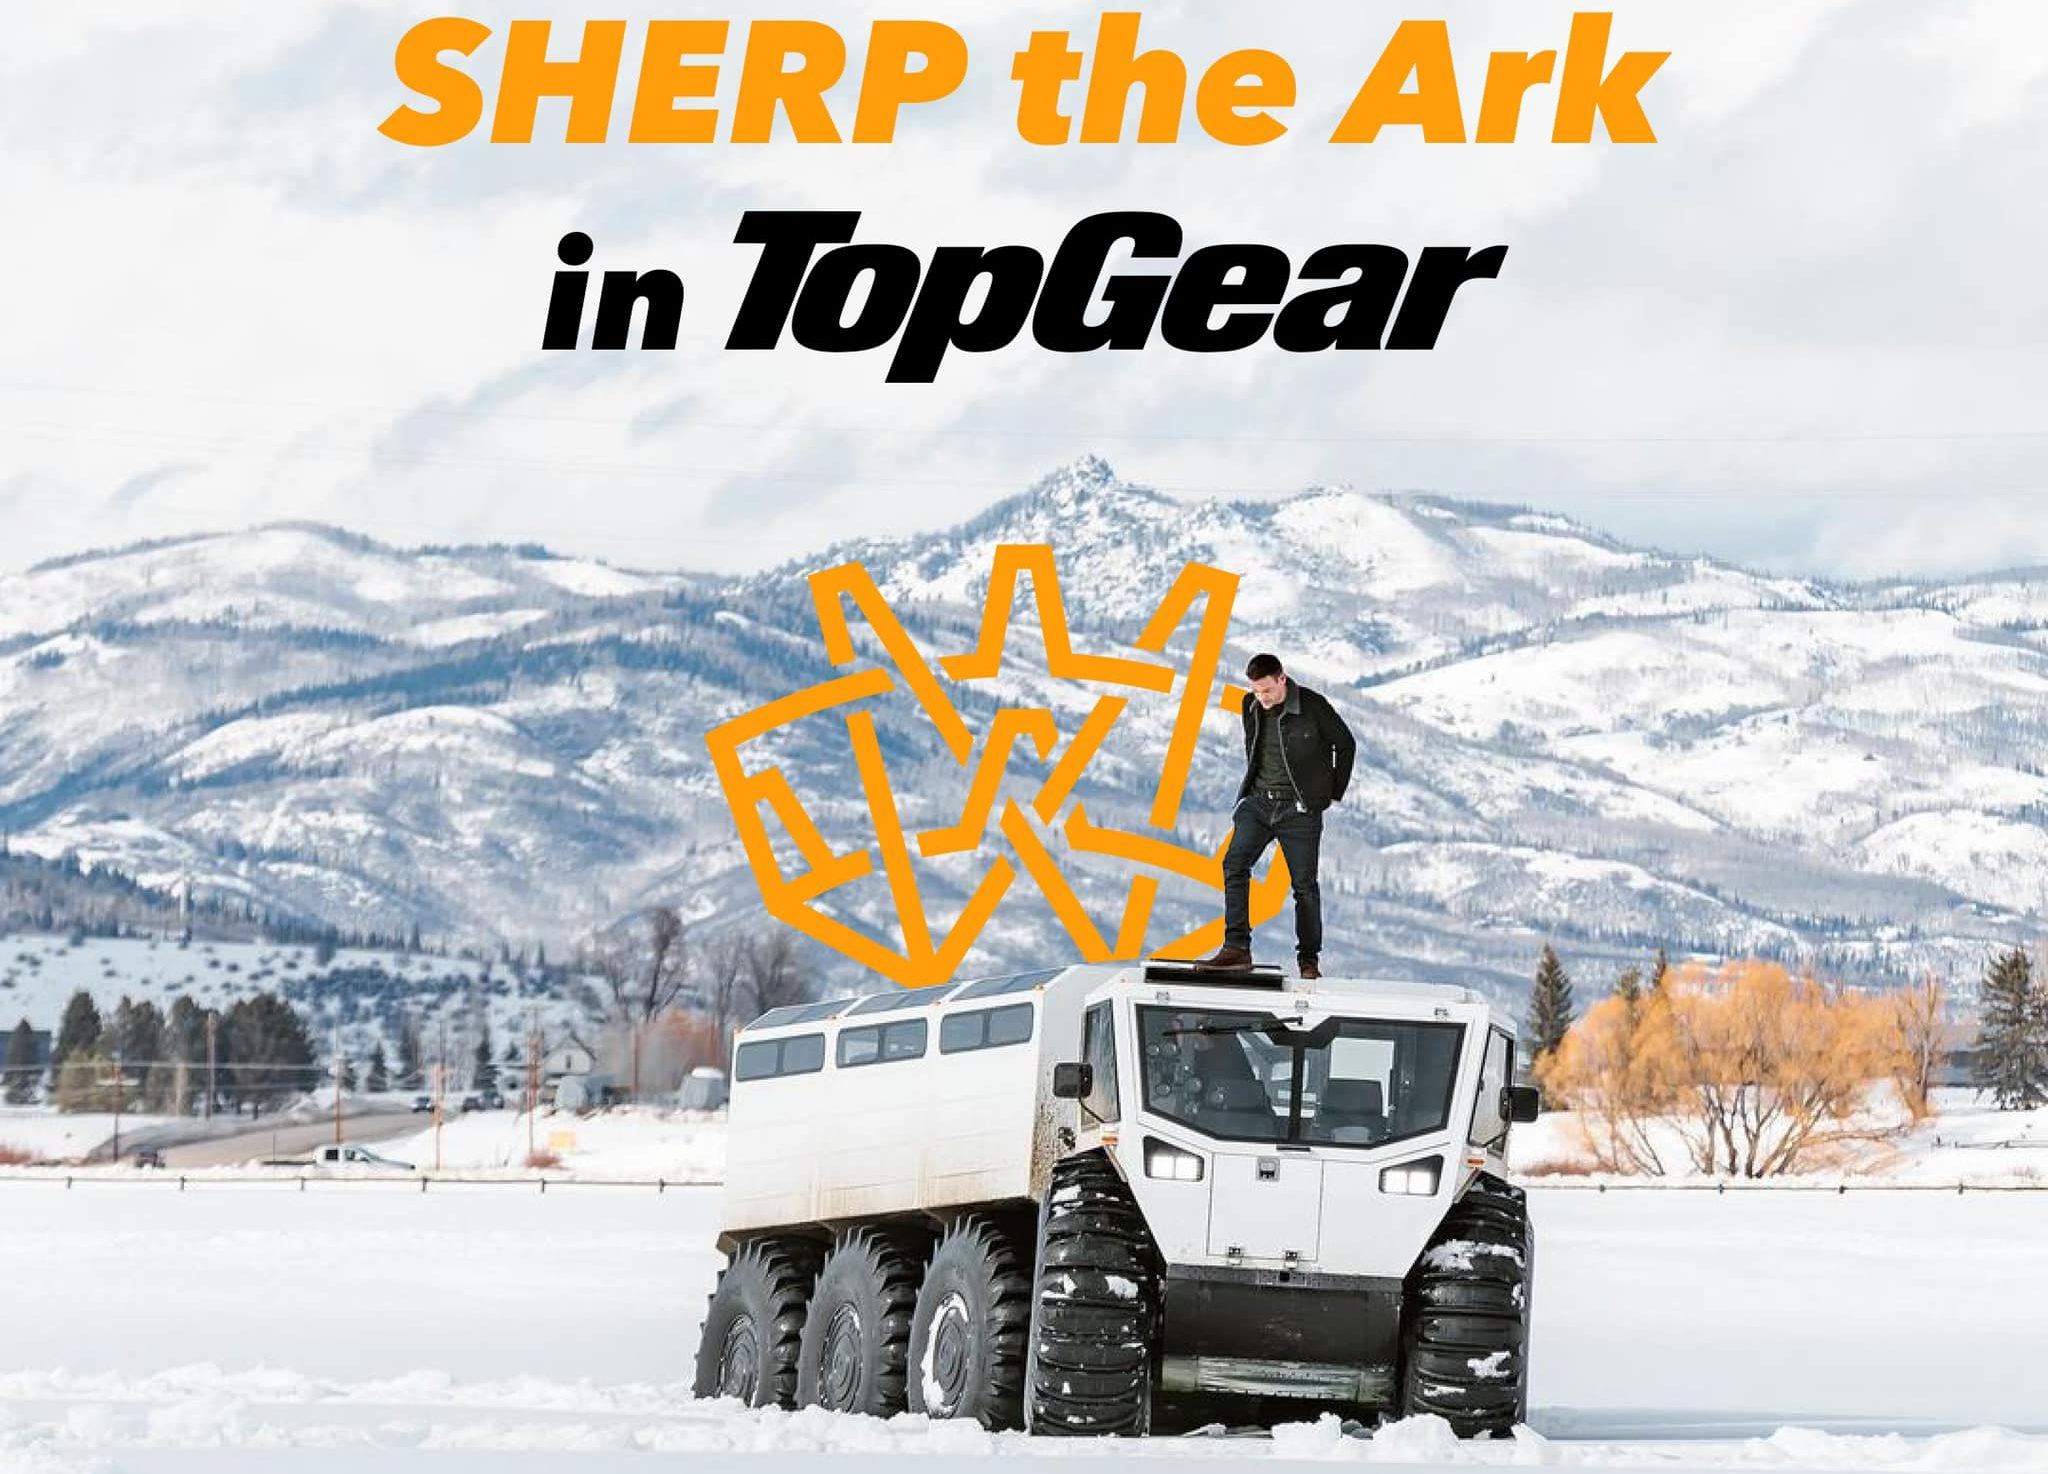 The Ark 3400 in the Top Gear America